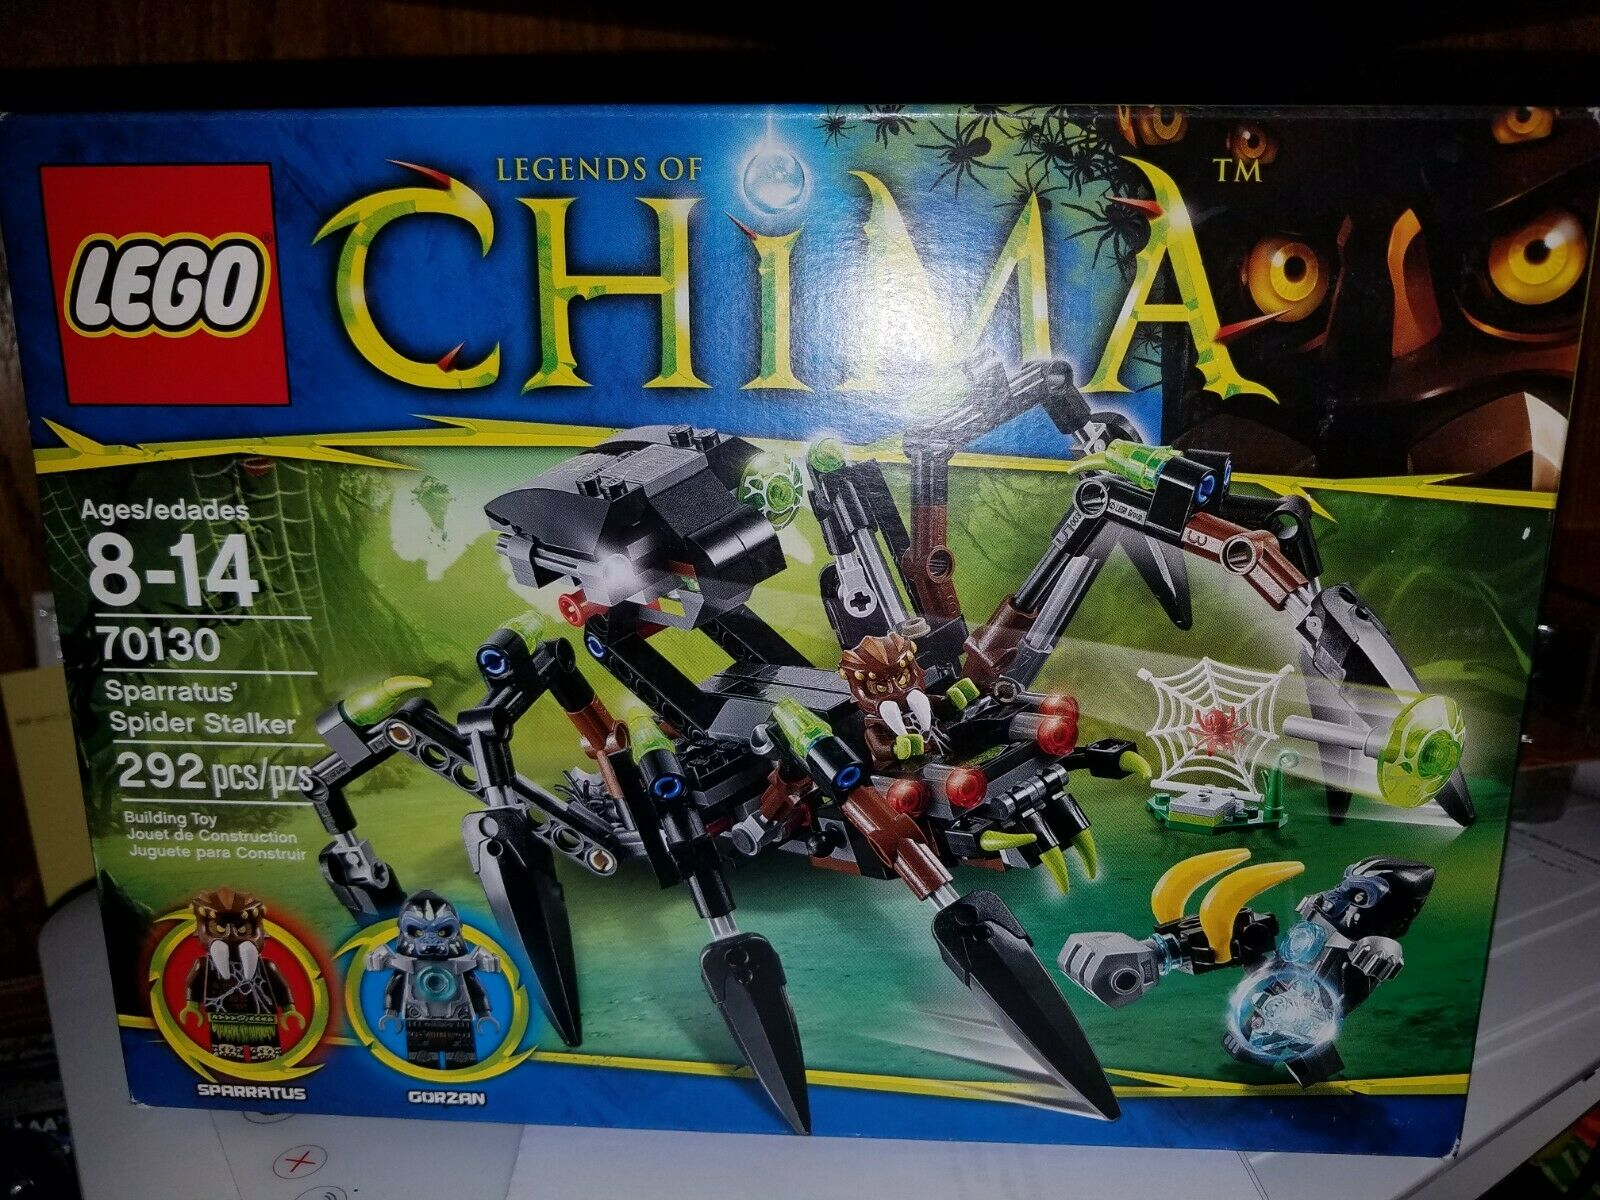 LEGO 70130 Legend of Chima NO MINI FIGURES // BOX Sparratus/' Spider Stalker